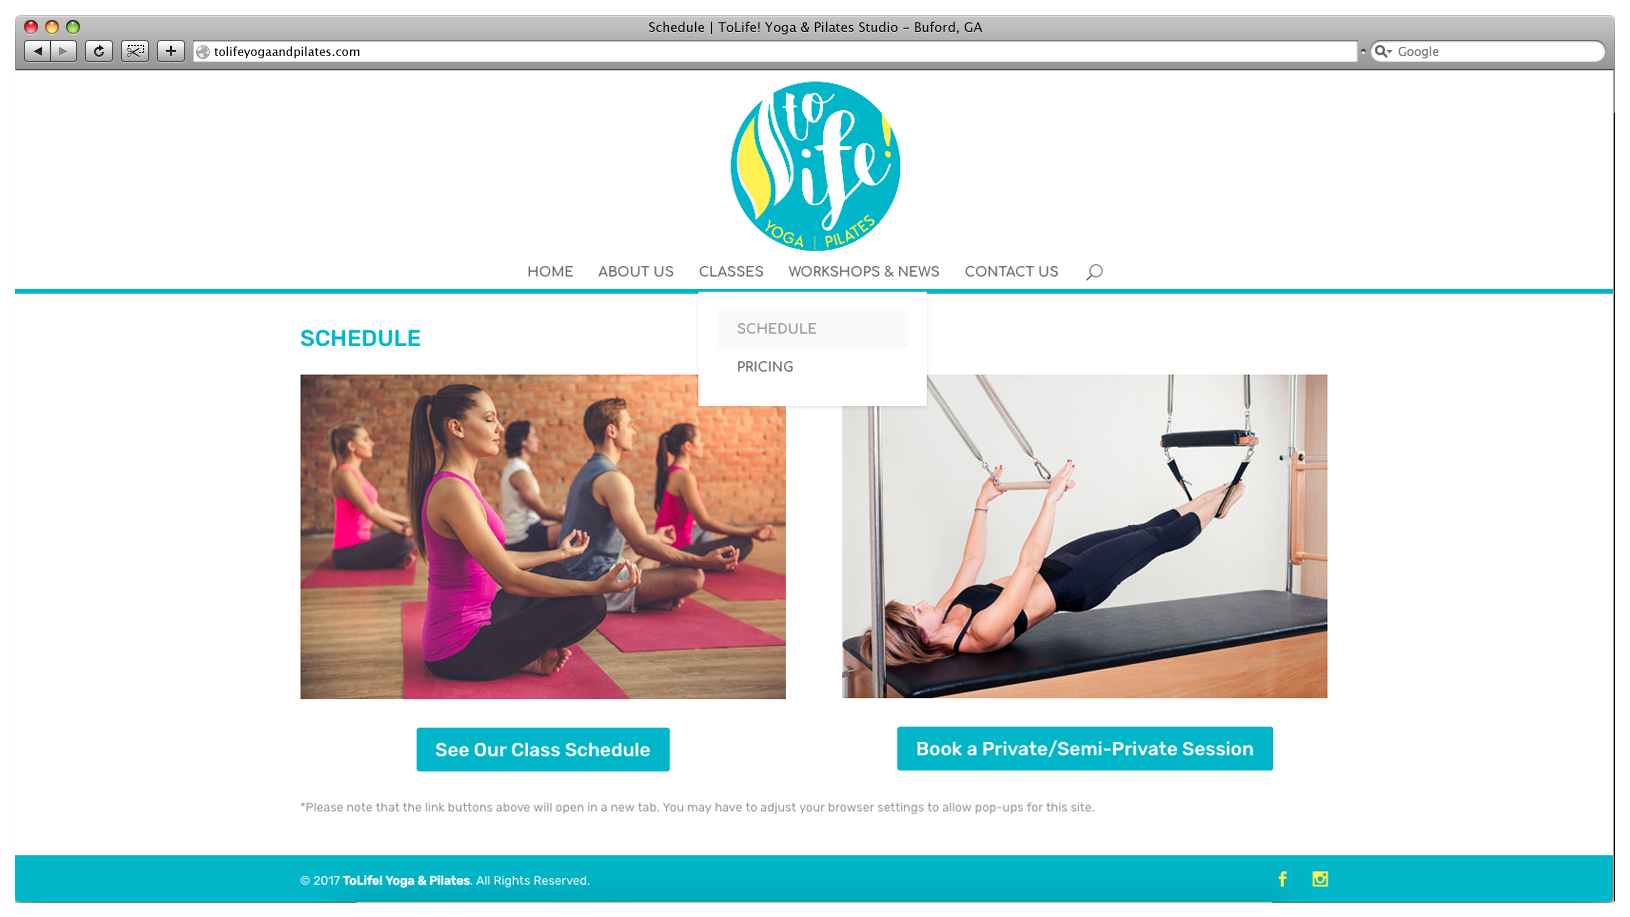 ToLife! Yoga and Pilates Website - Schedule